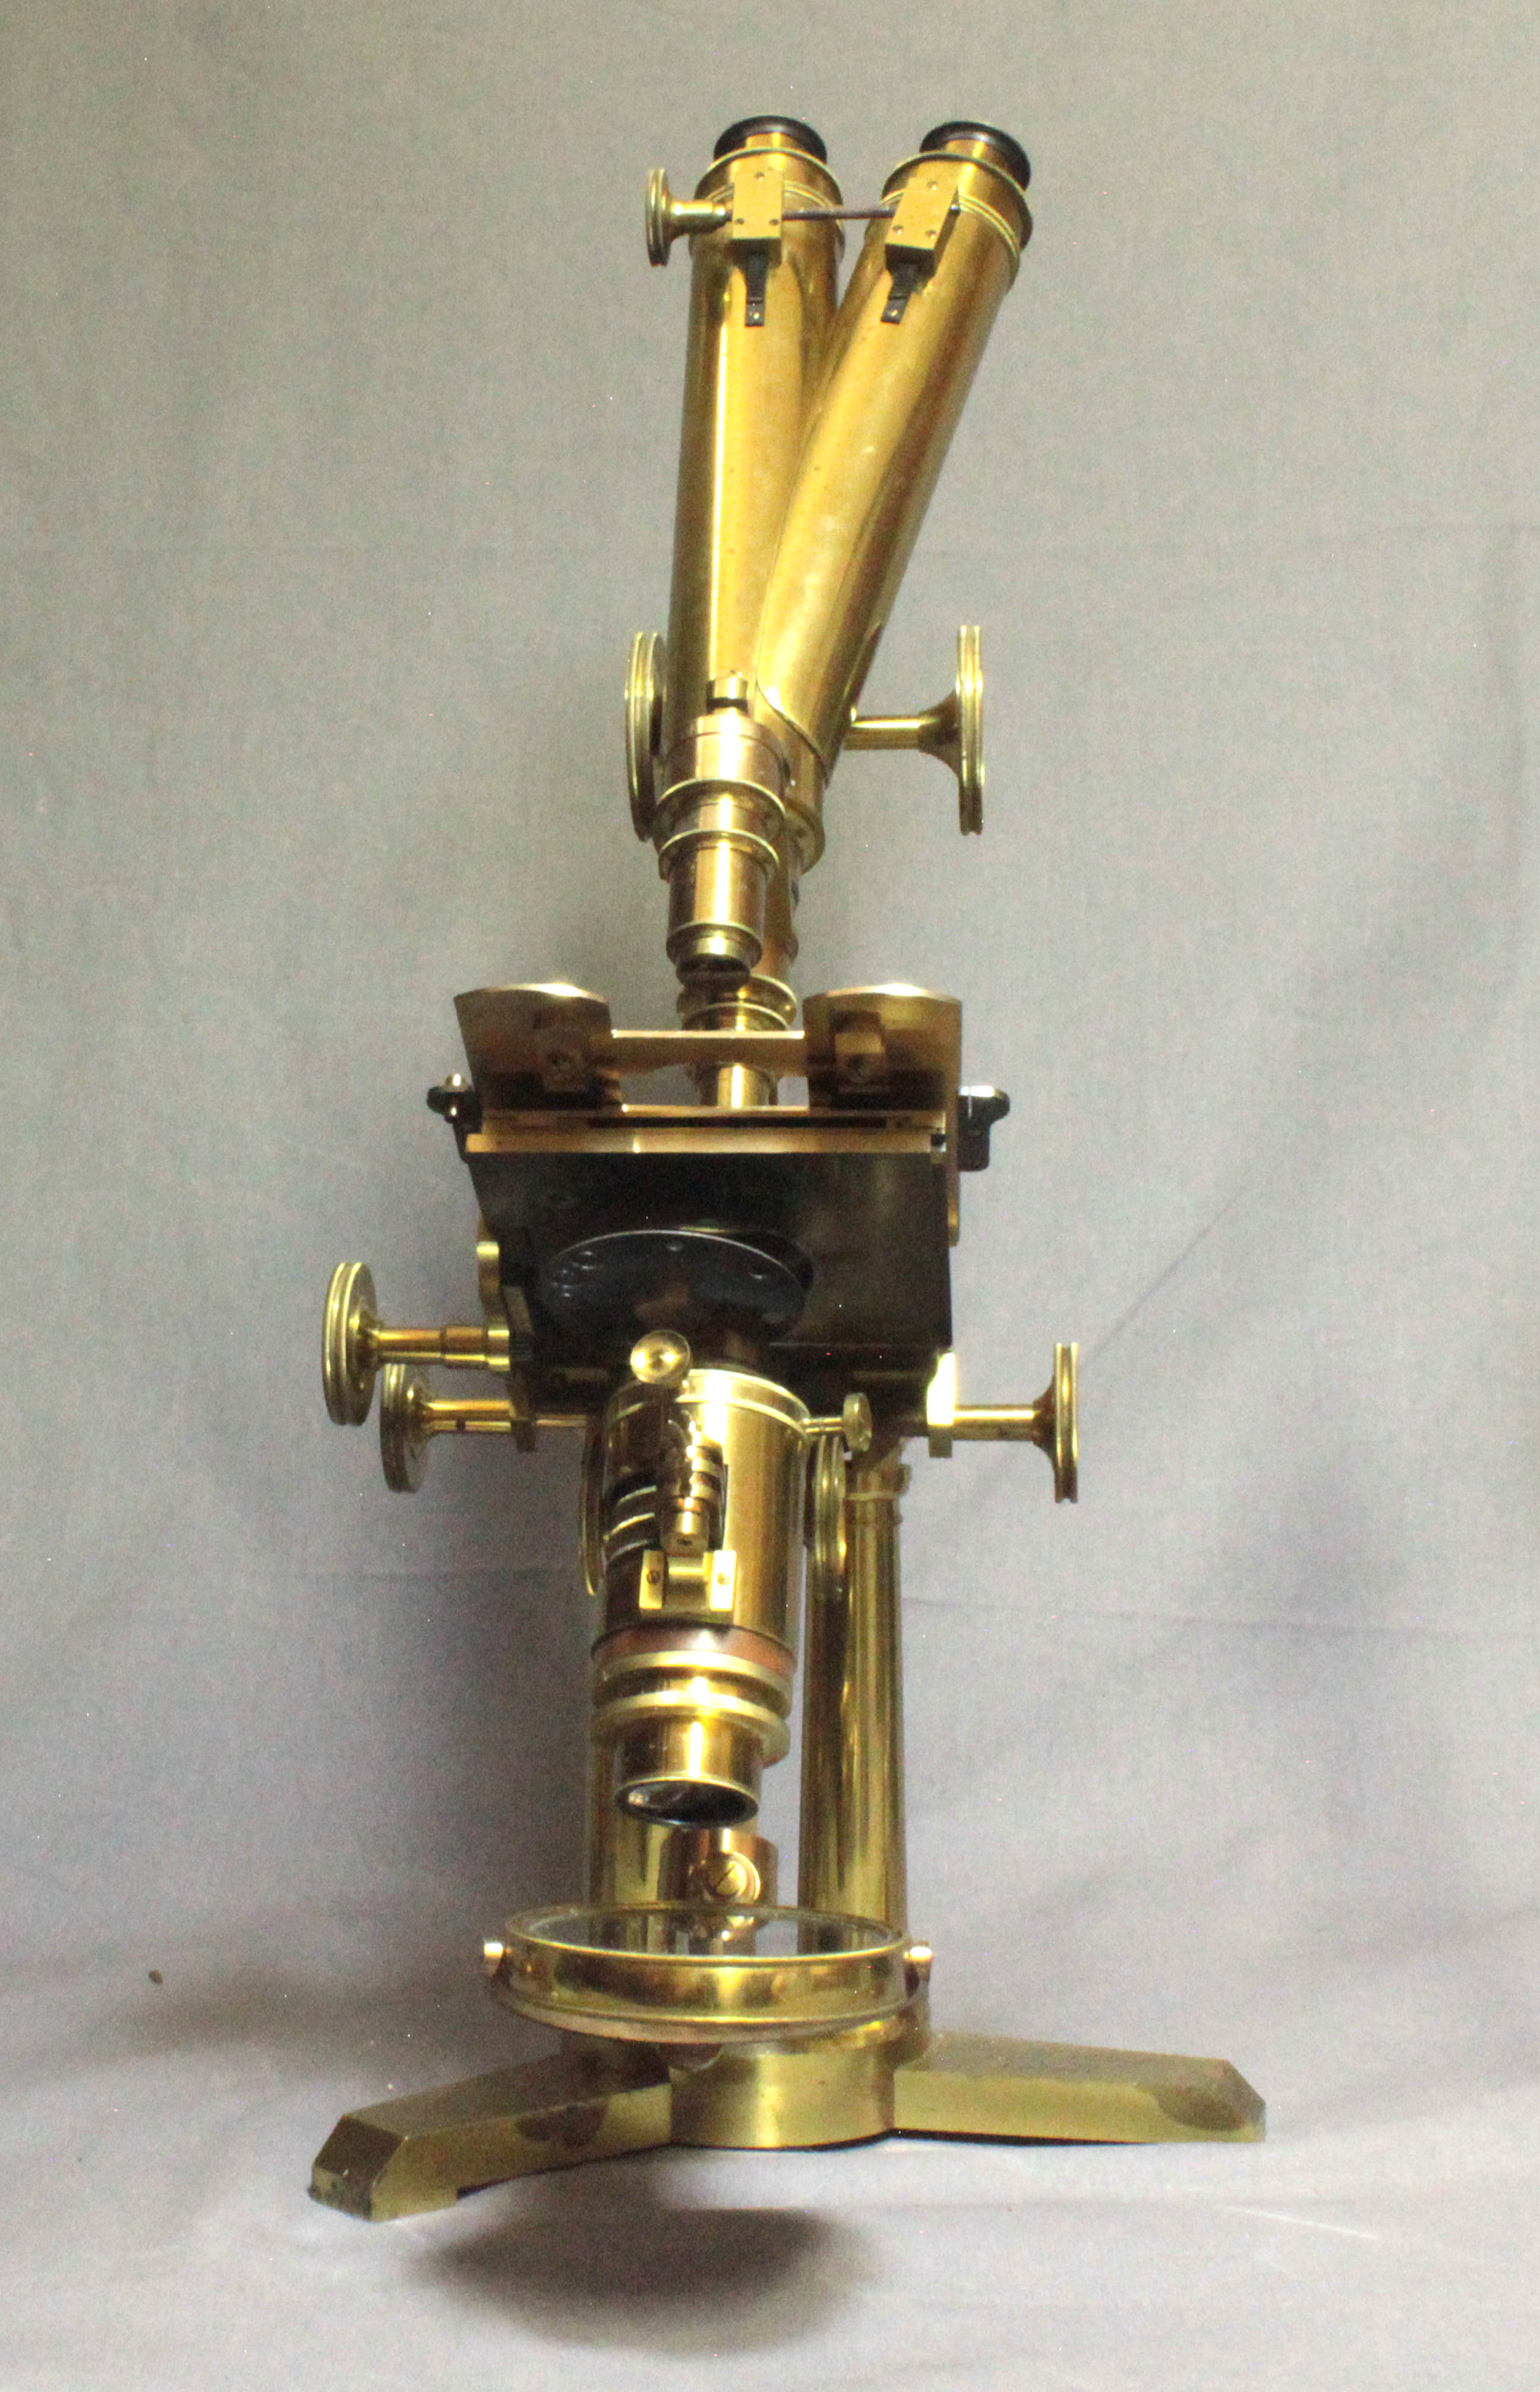 Smith & Beck Best No 1 microscope